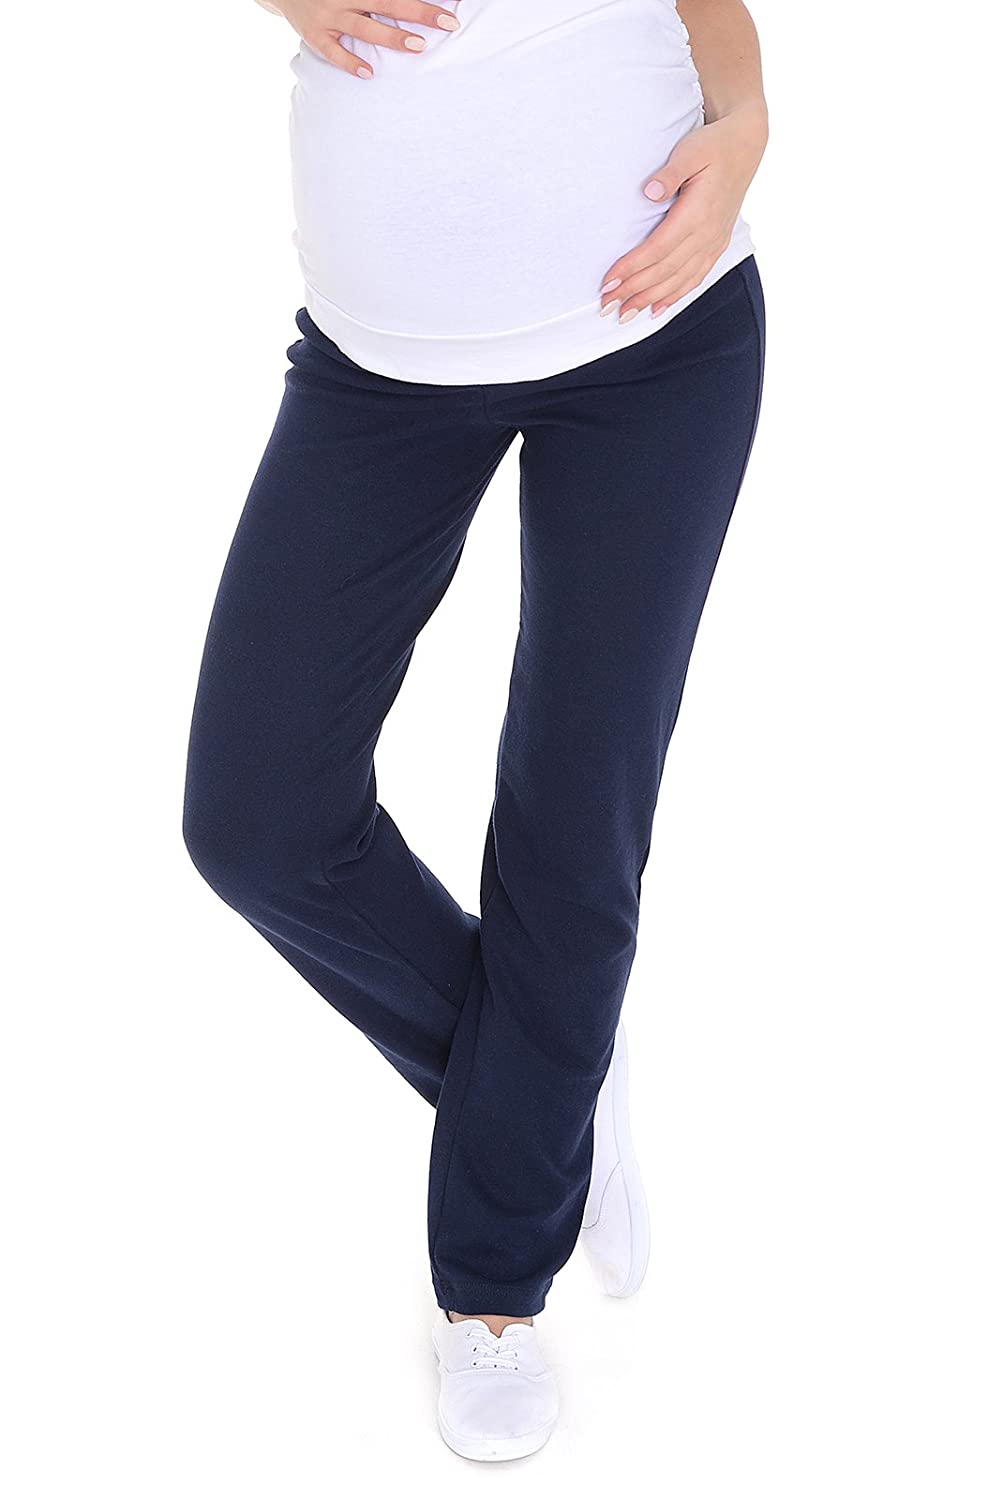 Pantalon de maternit/é d/écontract/é et confortable pour yoga Over Bump 3010 Mija